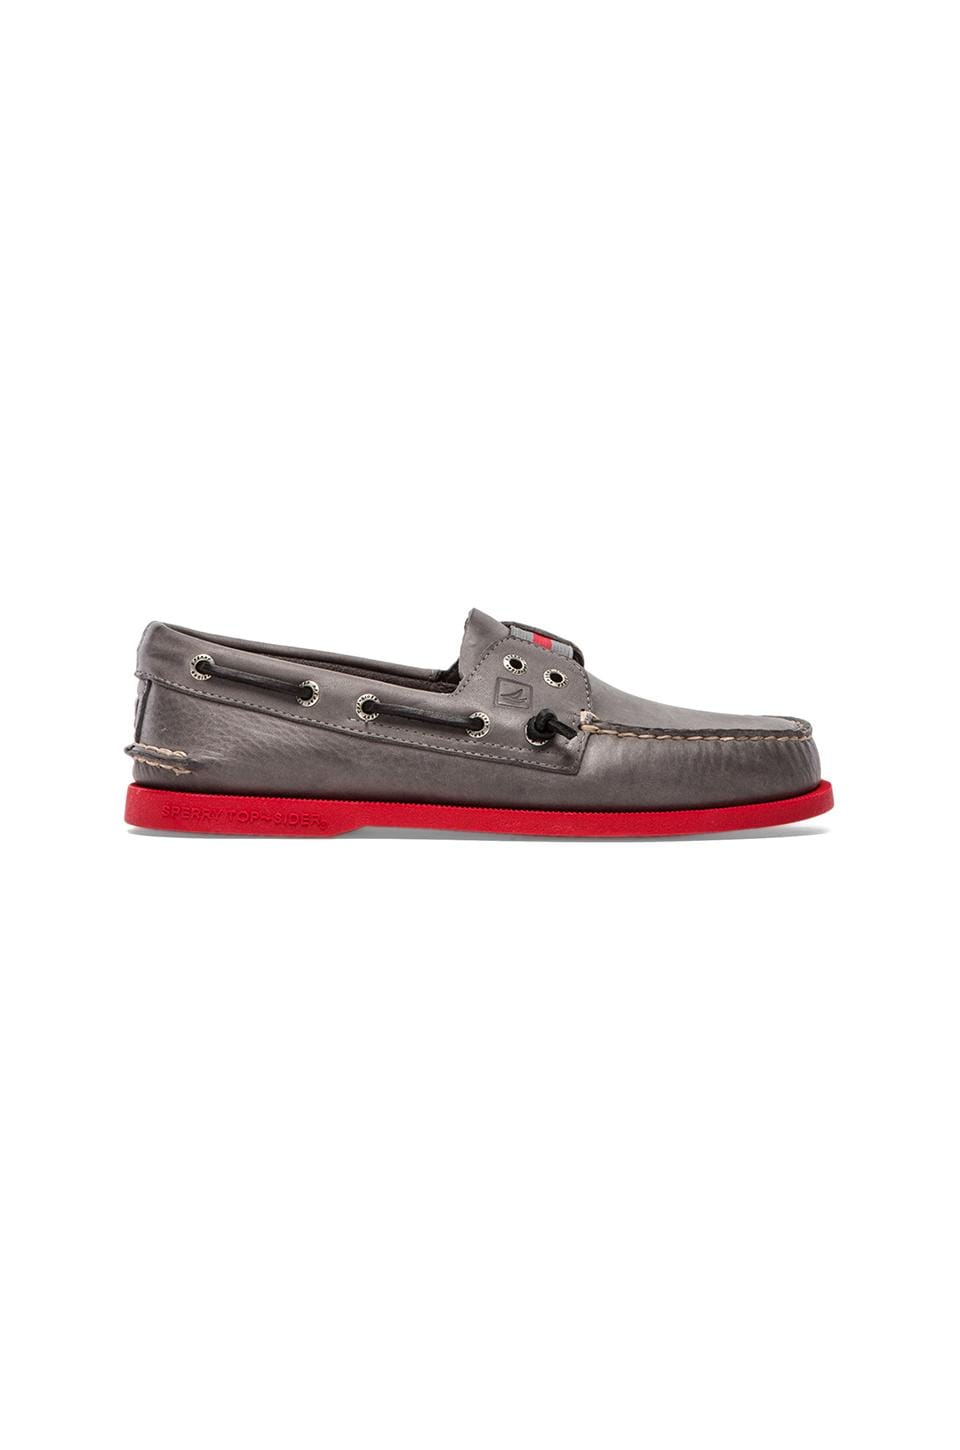 Sperry Top-Sider A/O Gore Colored in Grey & Red